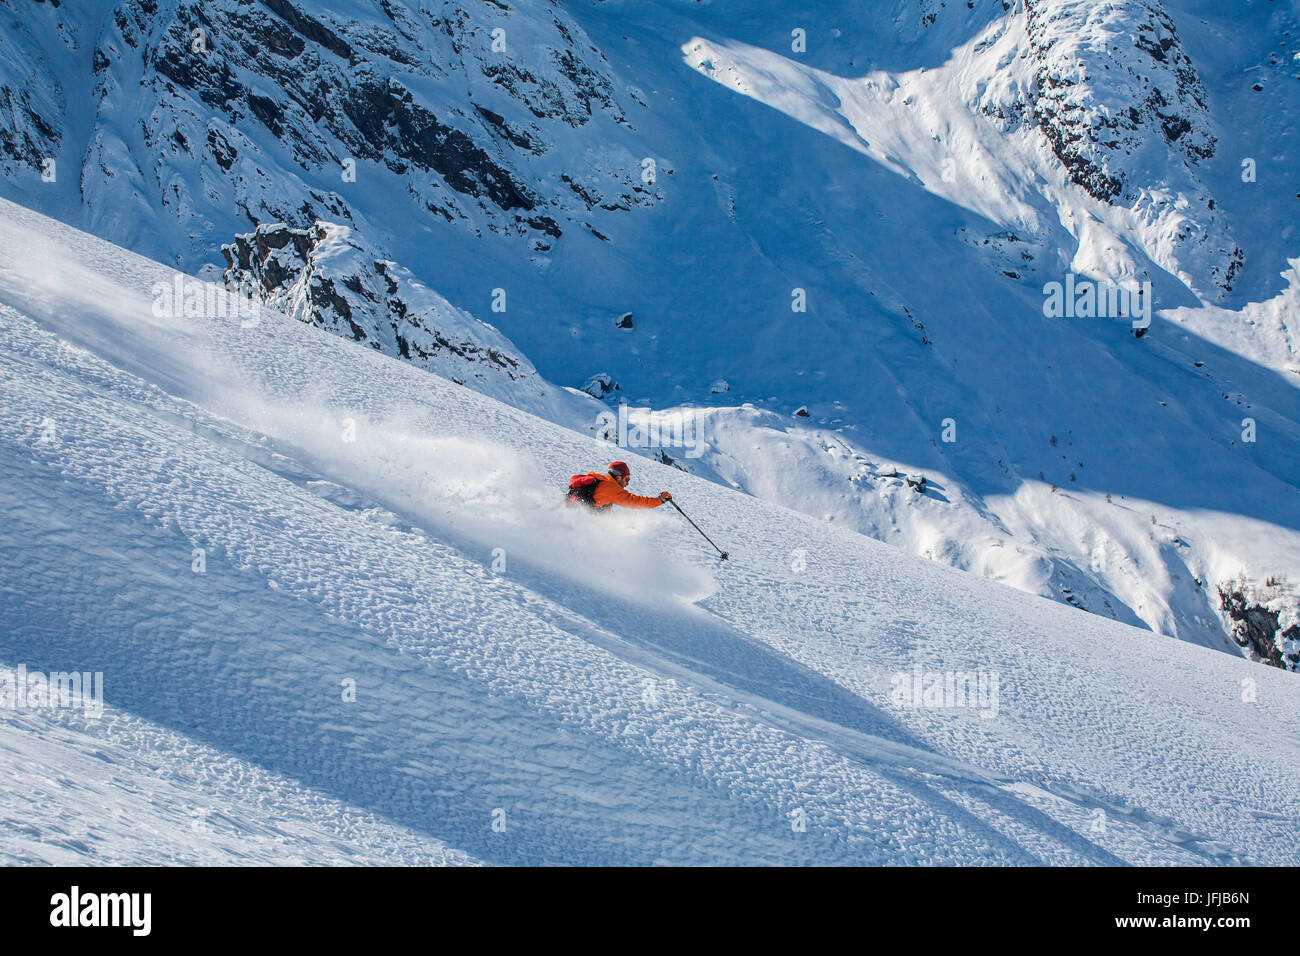 Orobie alps, freeride in Arigna valley, Lombardy, italy - Stock Image